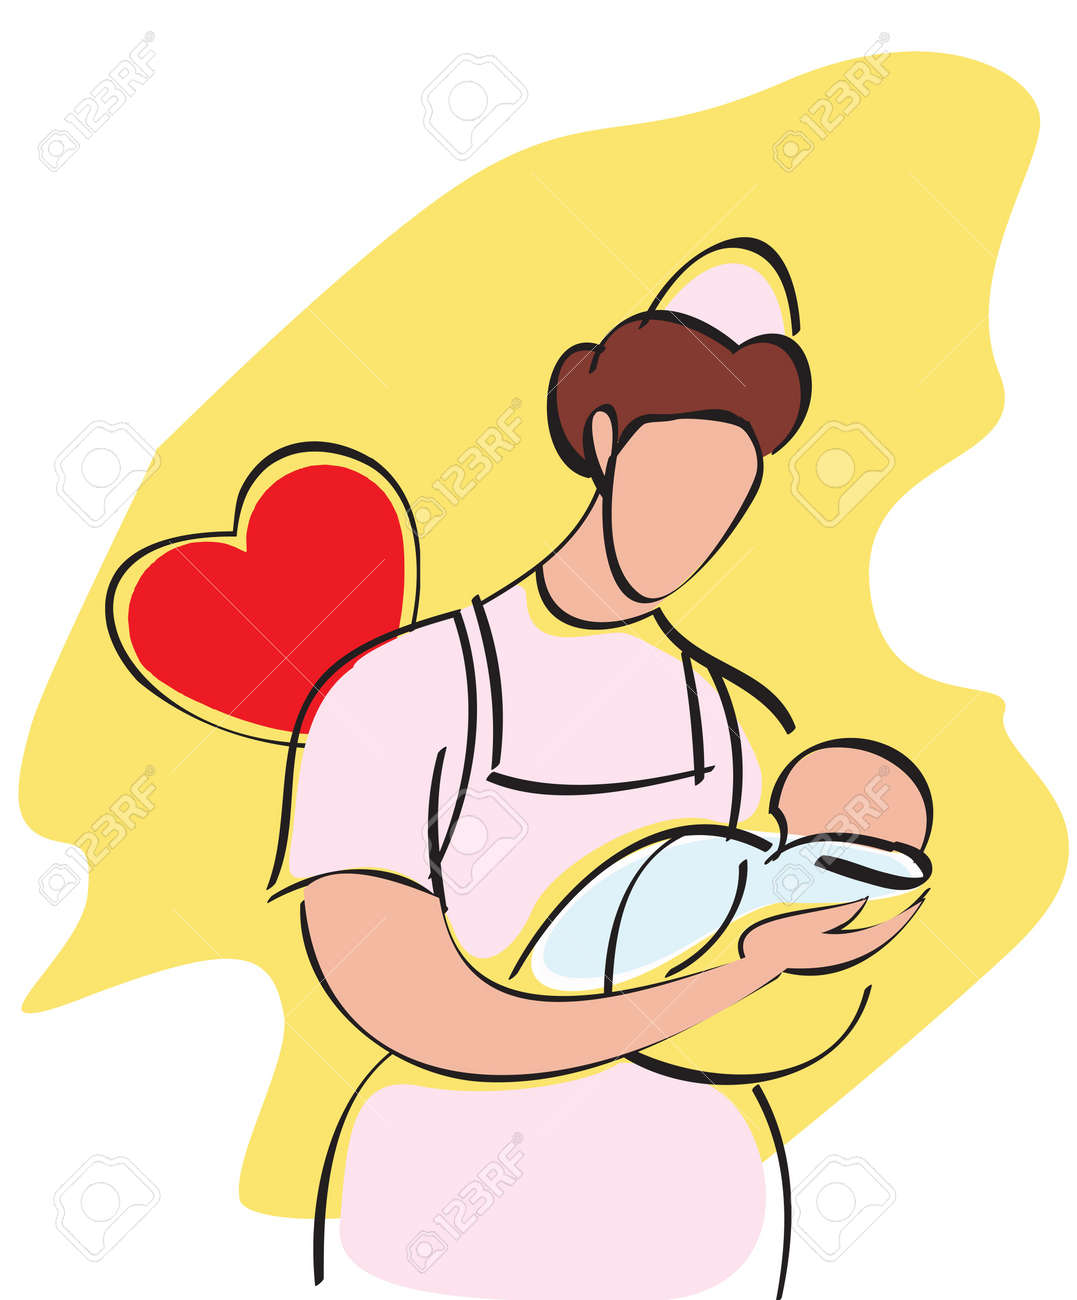 Female nurse carrying a baby Stock Photo - 7861176